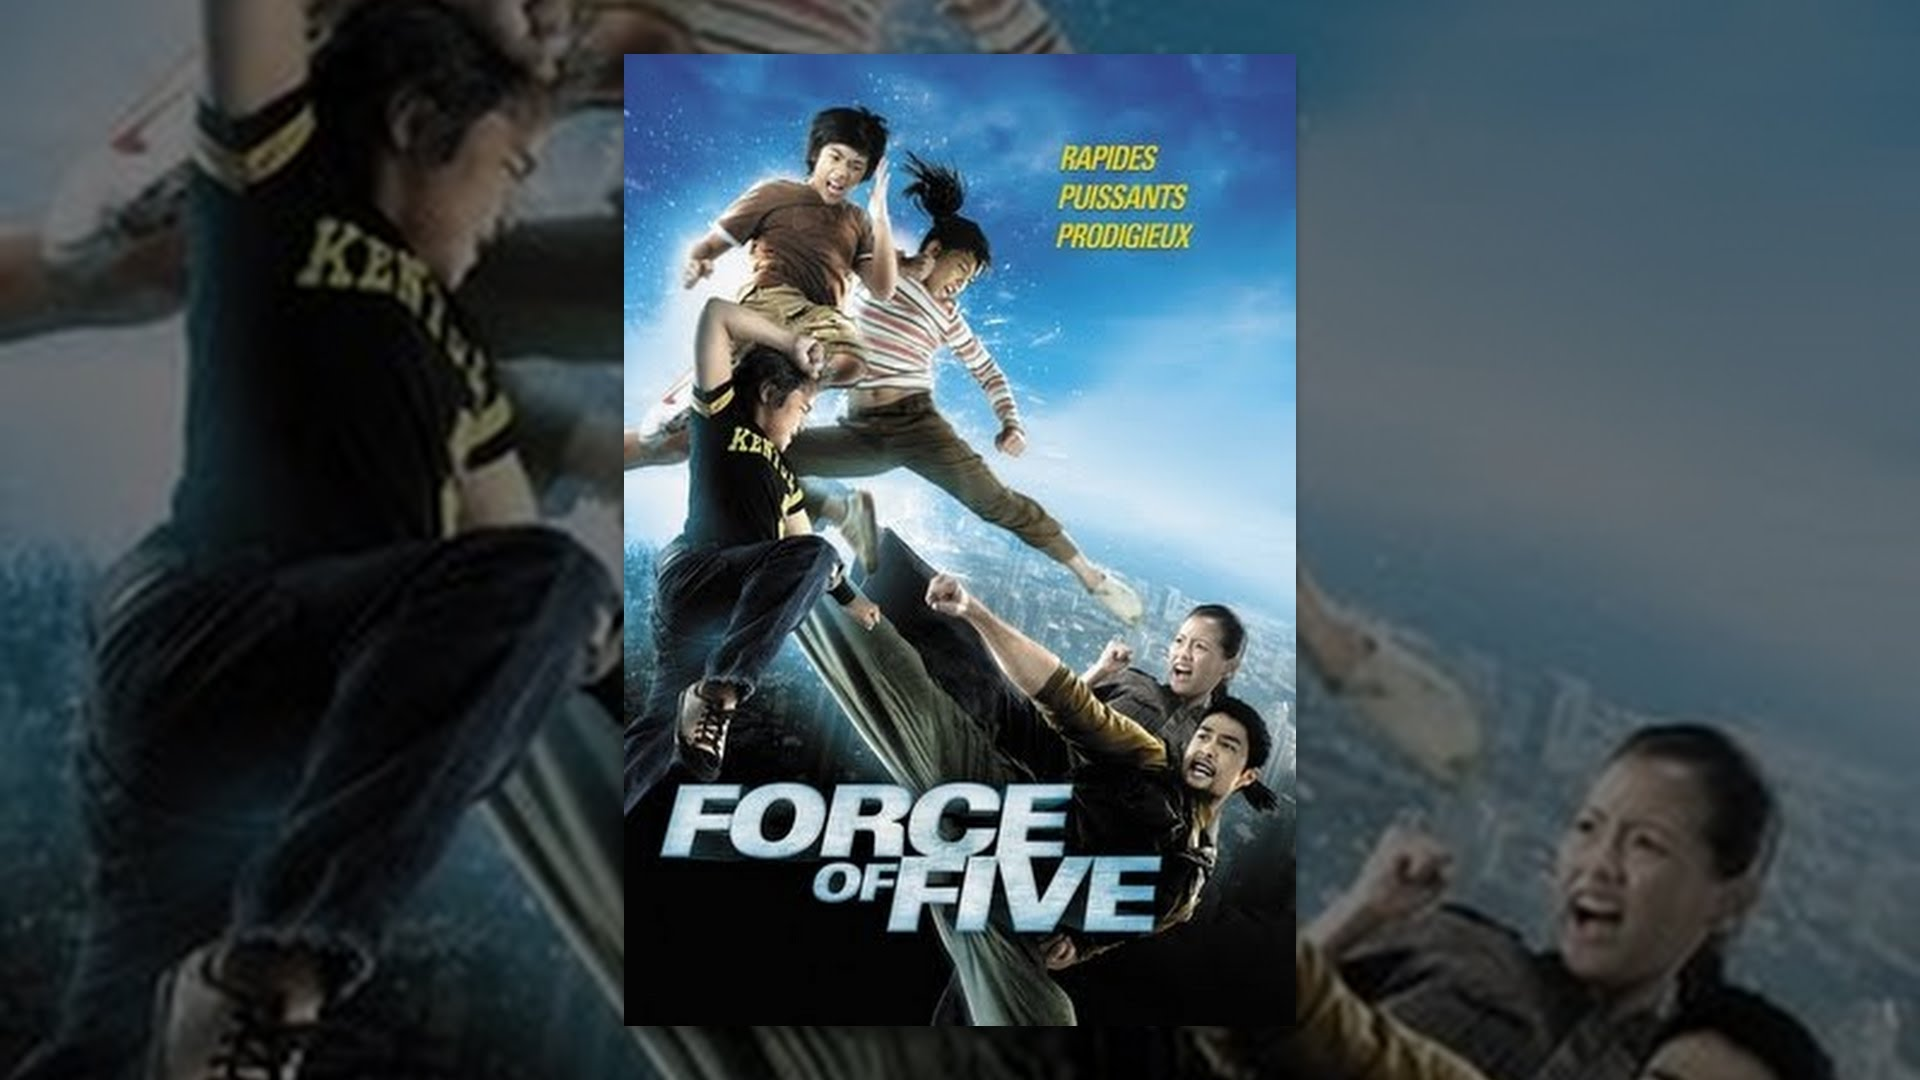 Download Force of five (VF)